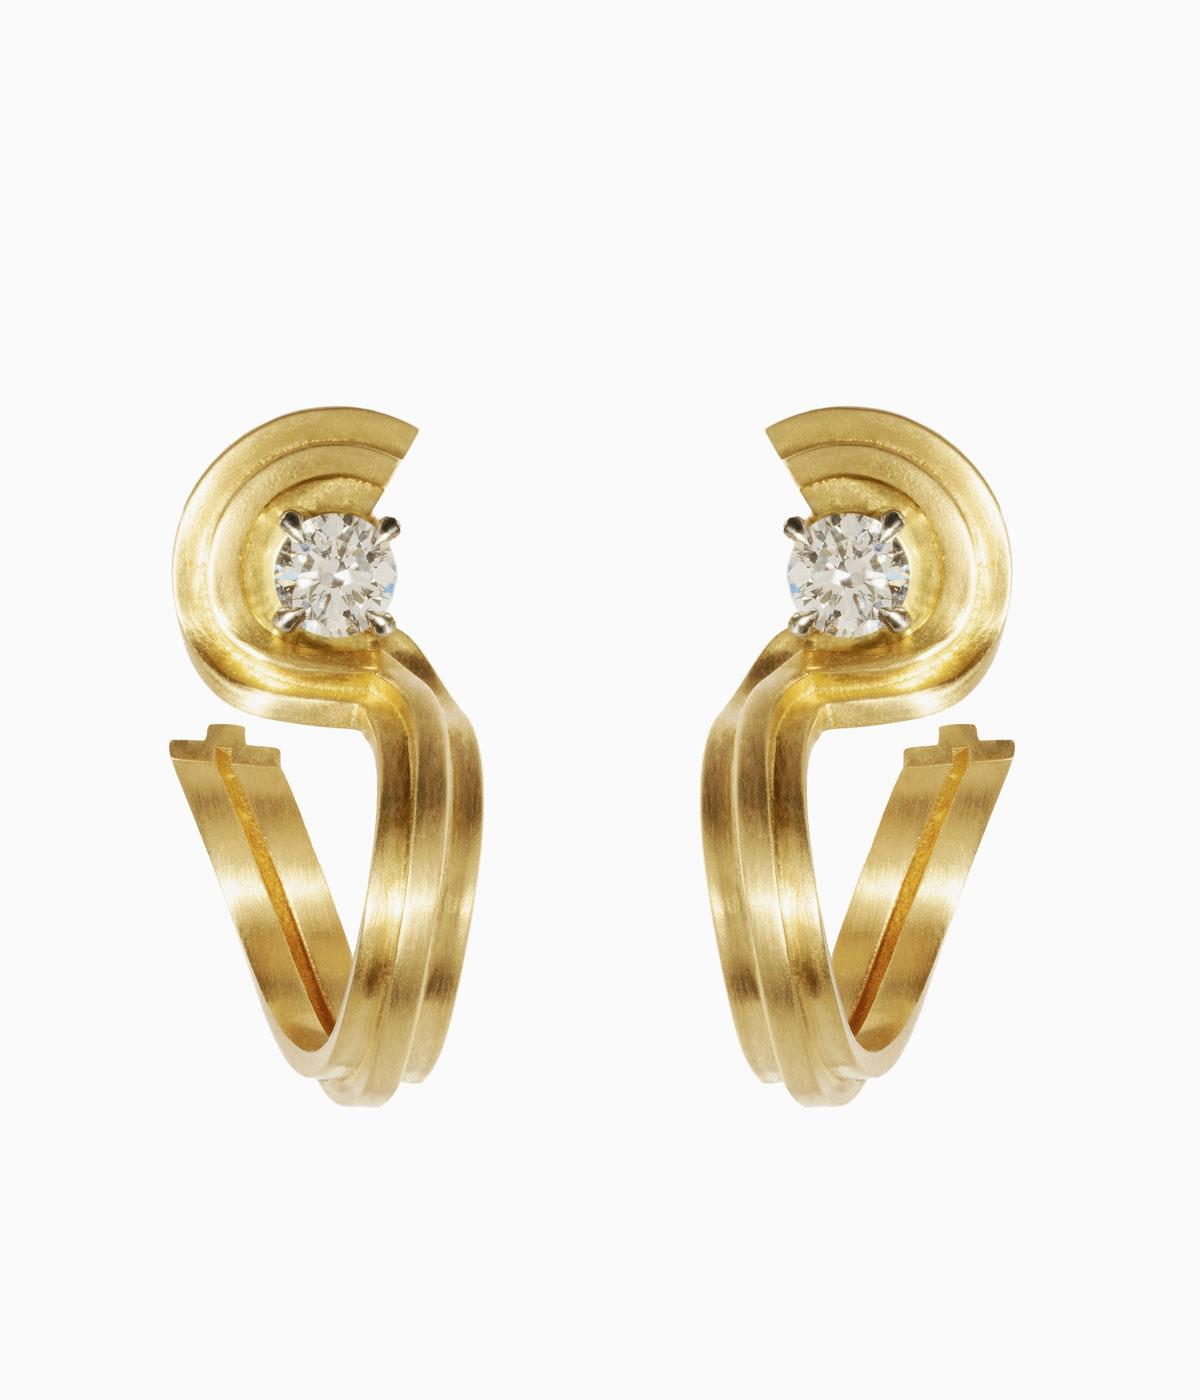 Gold curved earrings each with a single diamond